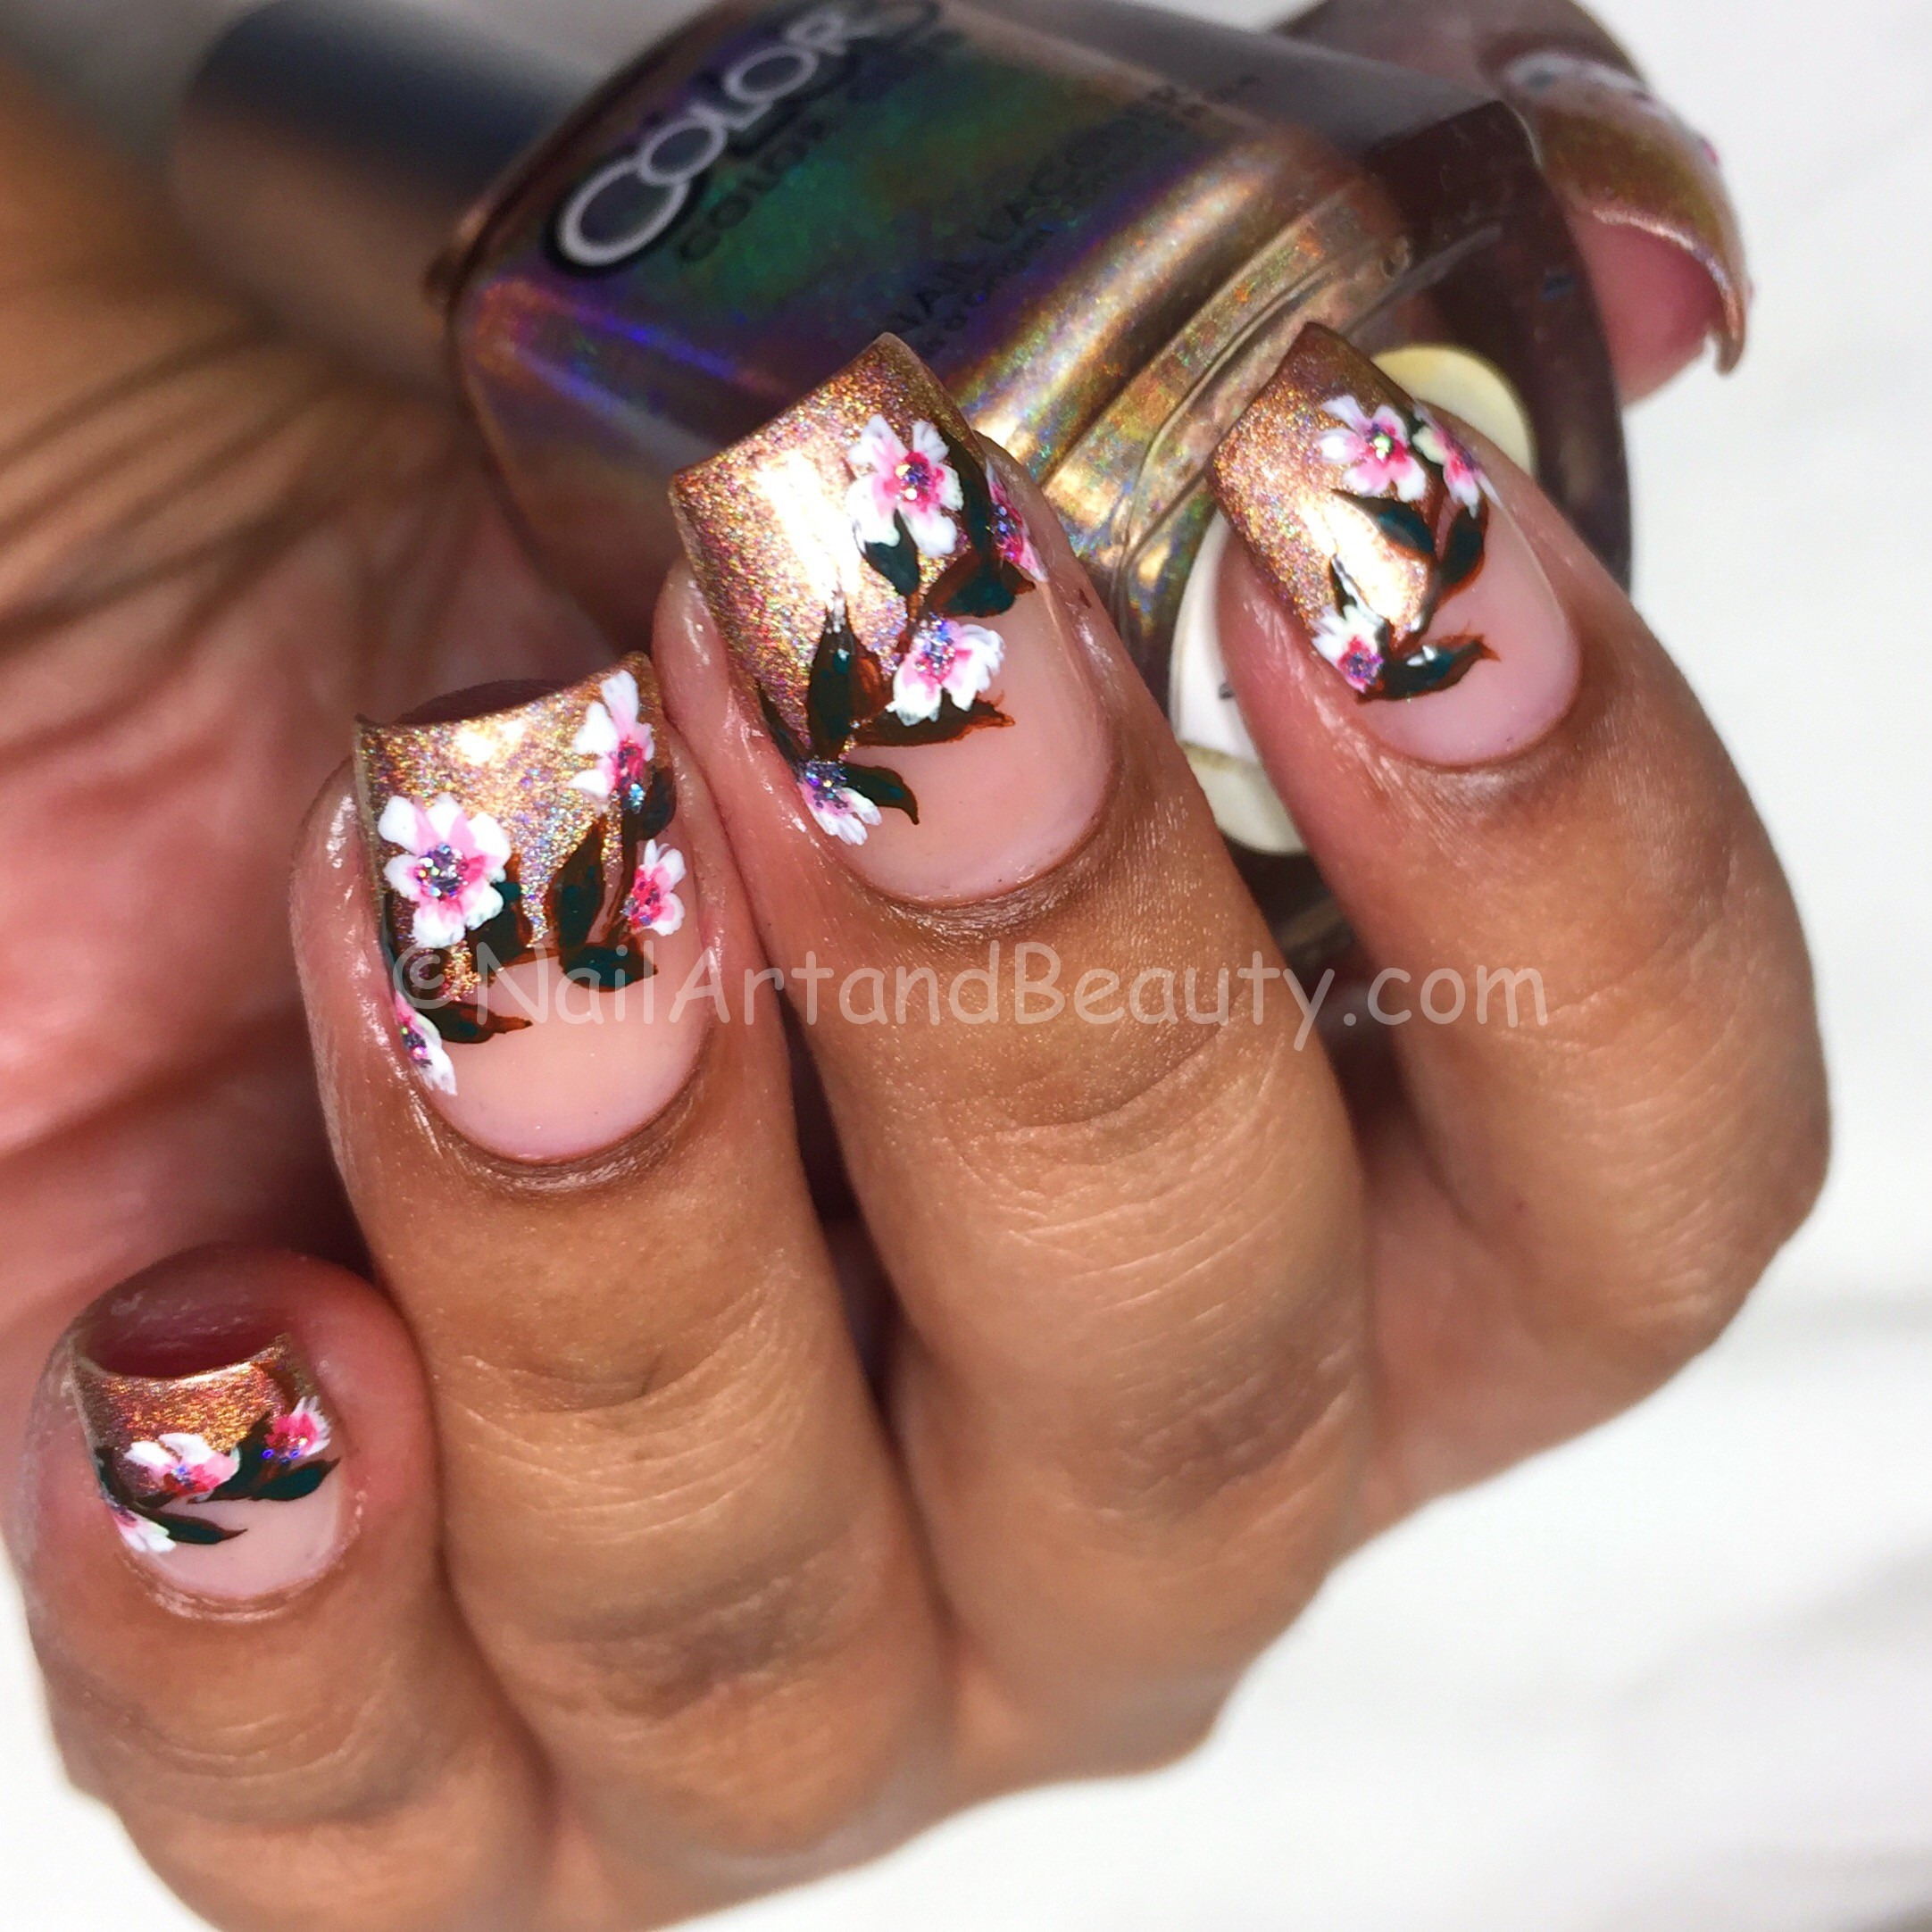 Florals inspired by Robin Moses